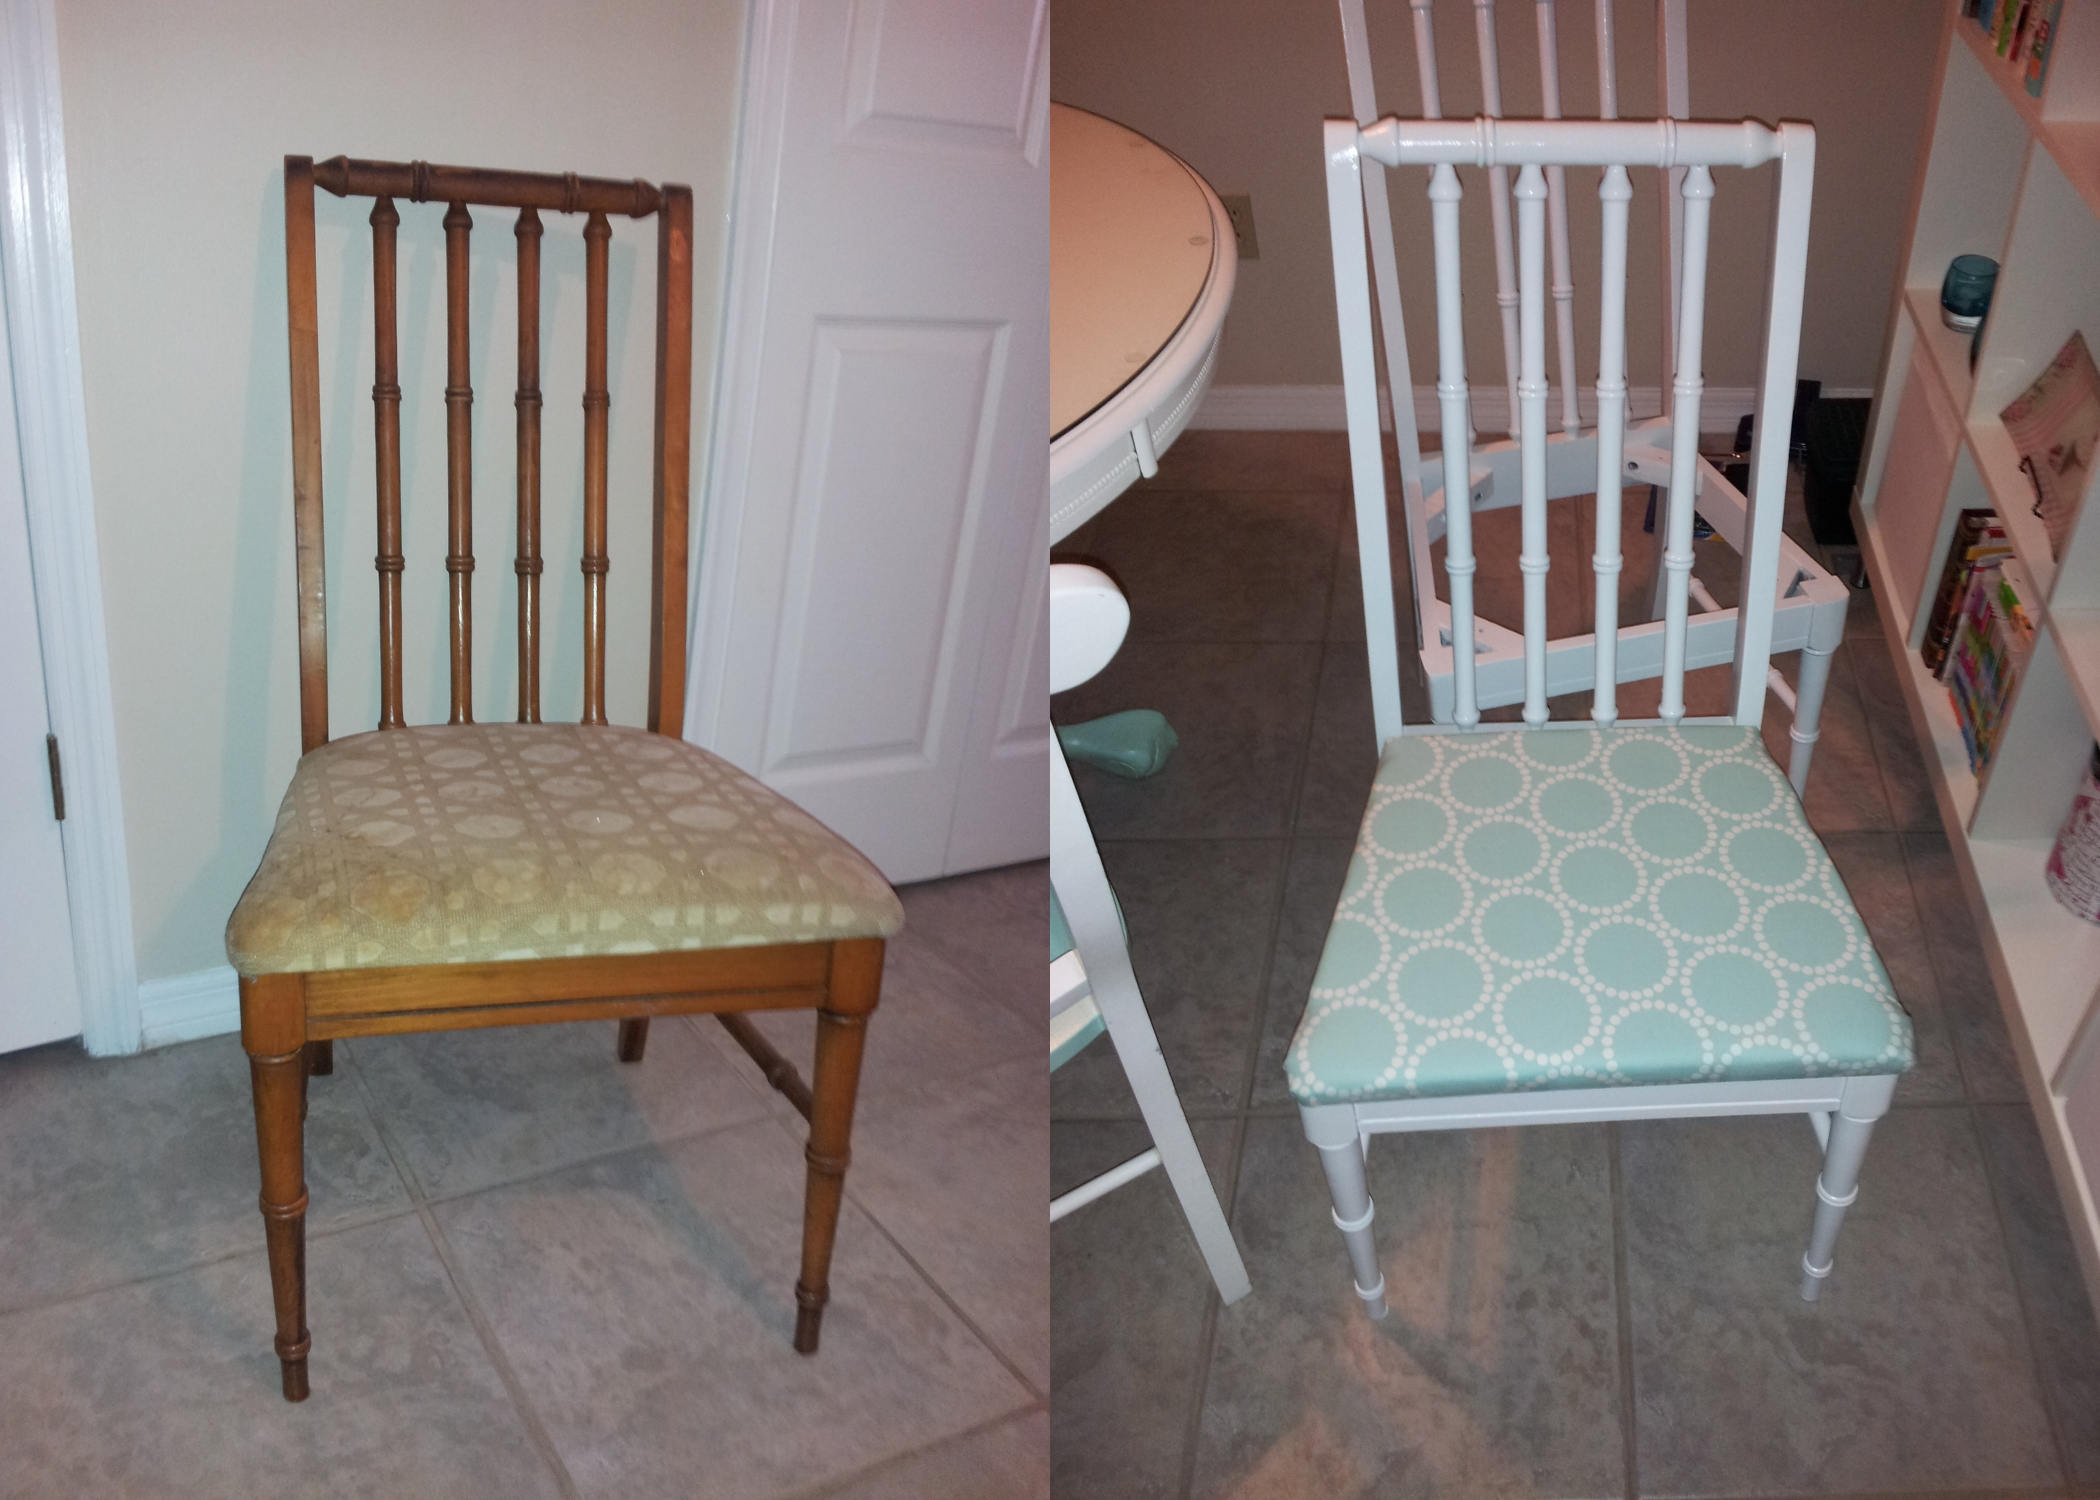 Thrift Store Chair Redo - Find out more at frommarriedtomerry.wordpress.com